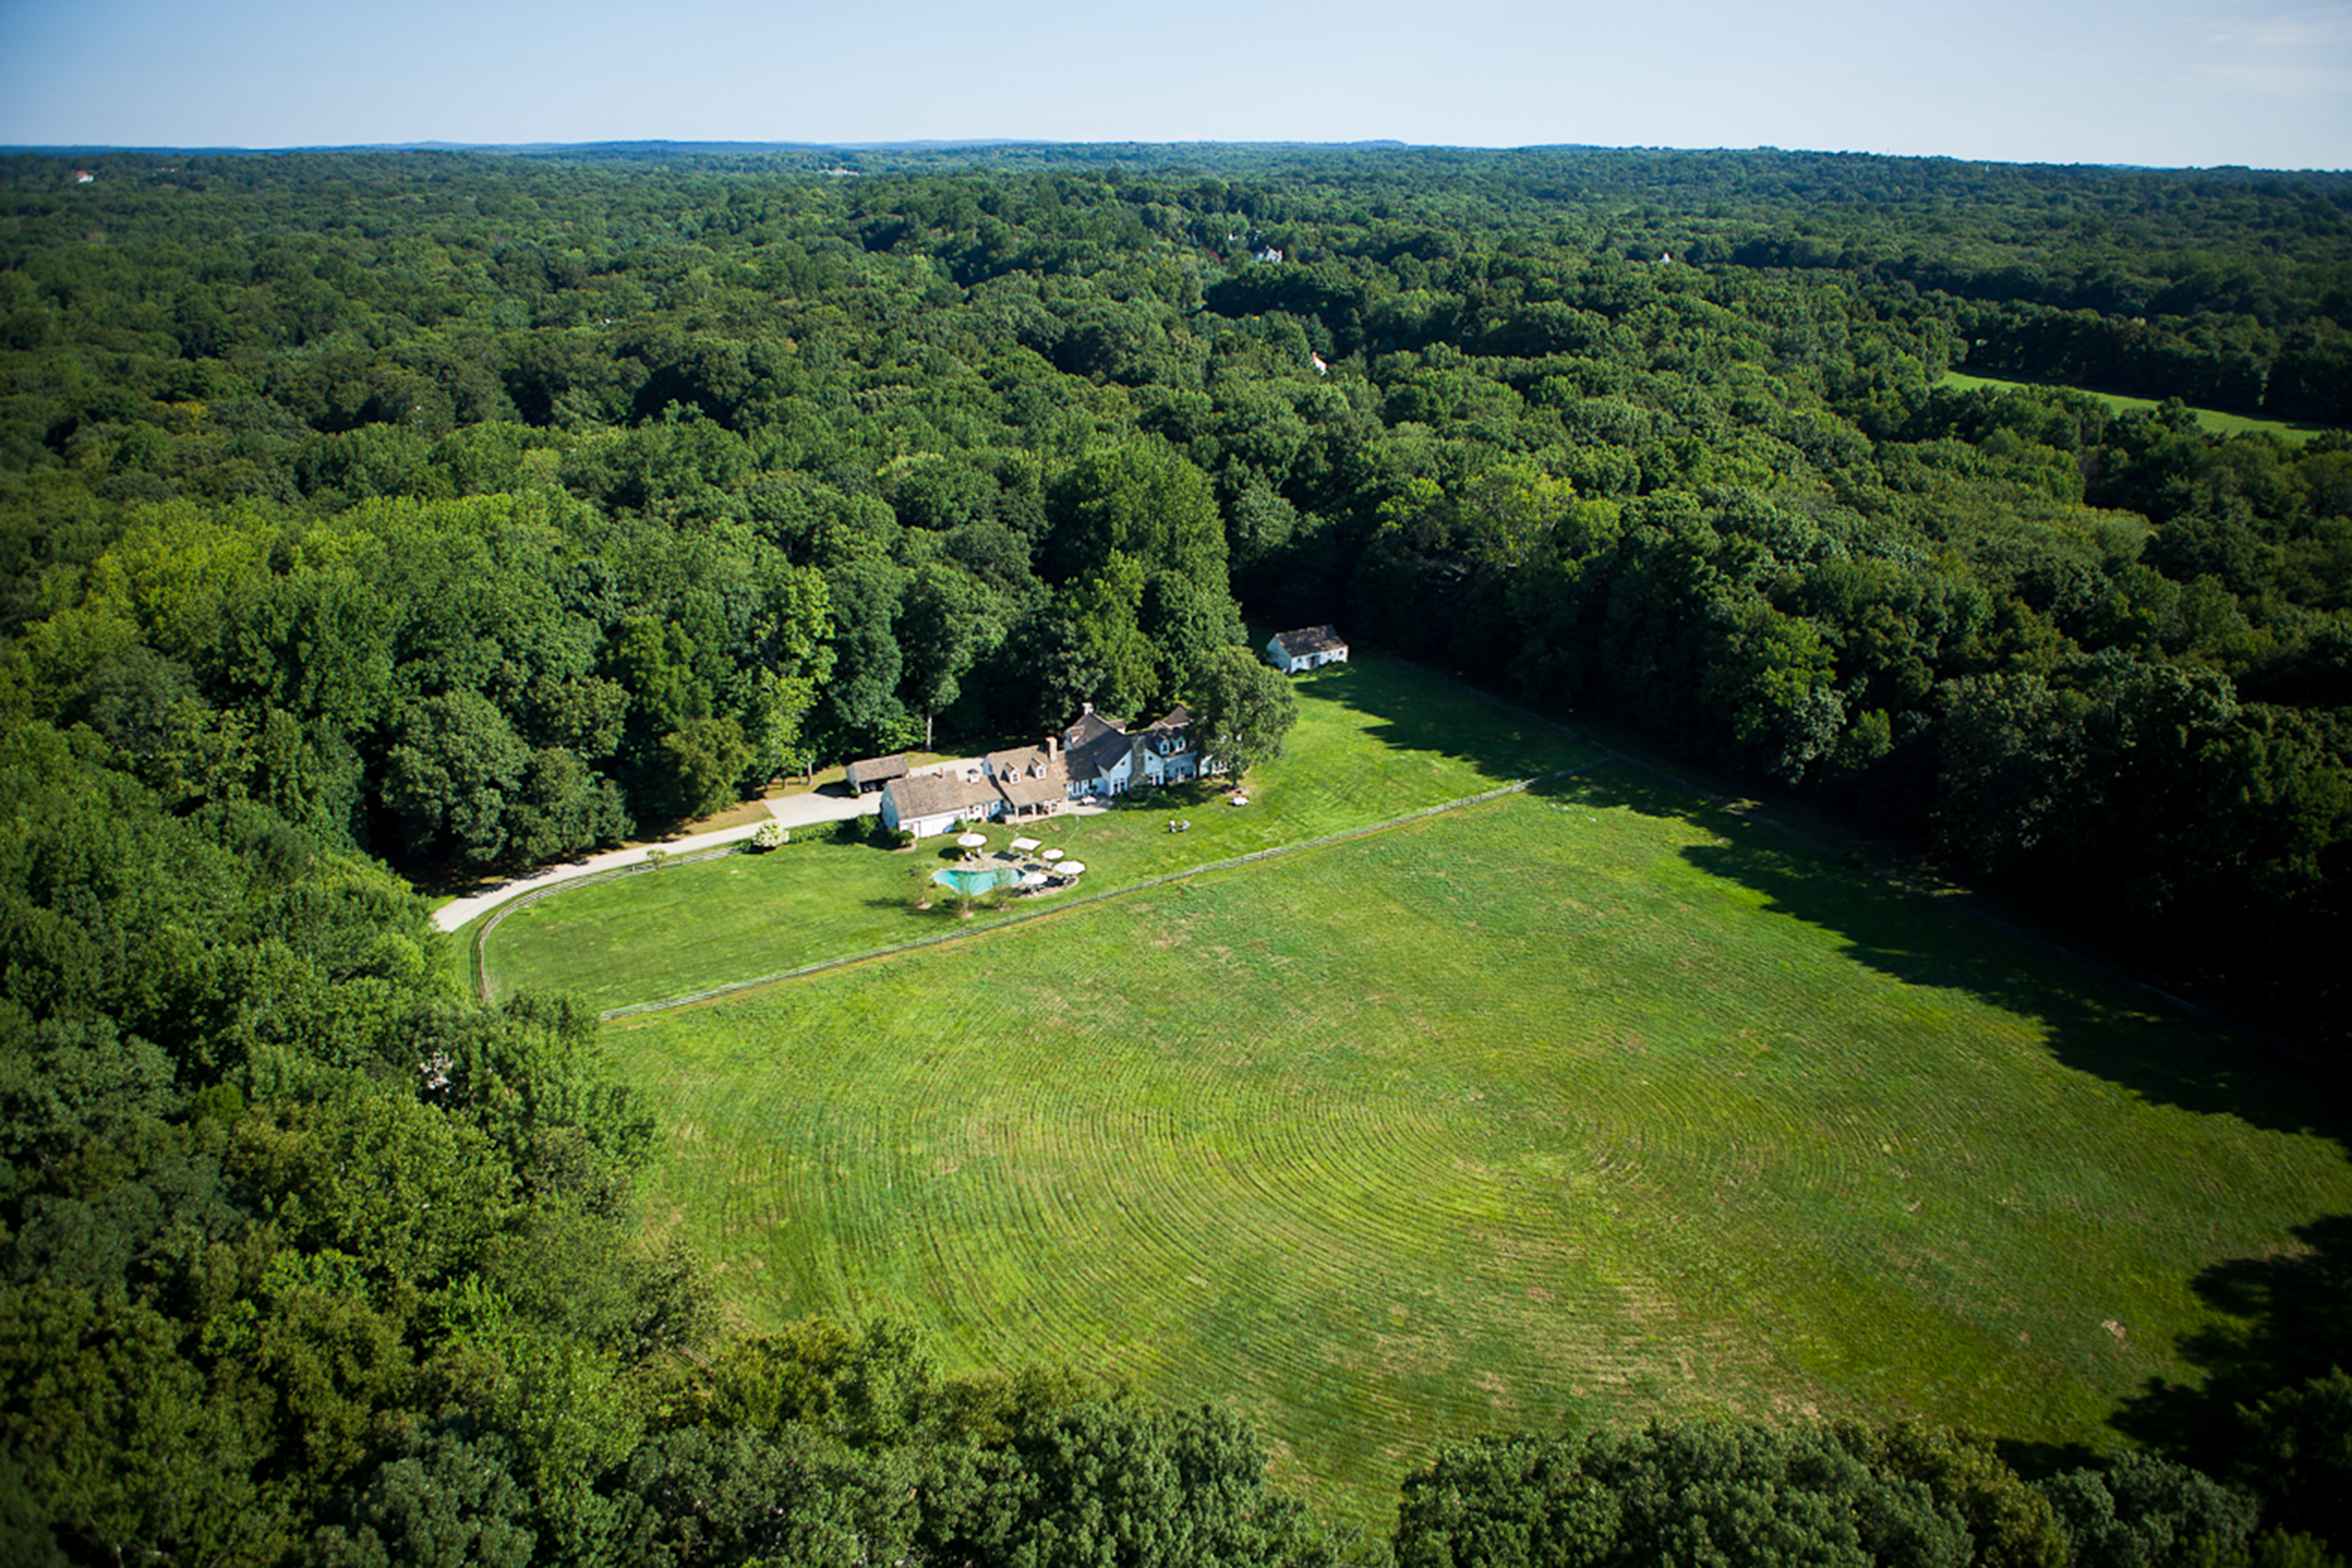 Single Family Home for Sale at Rare 20 Acre Country Estate 1170 Hulls Farm Road Southport, Fairfield, Connecticut, 06890 United States